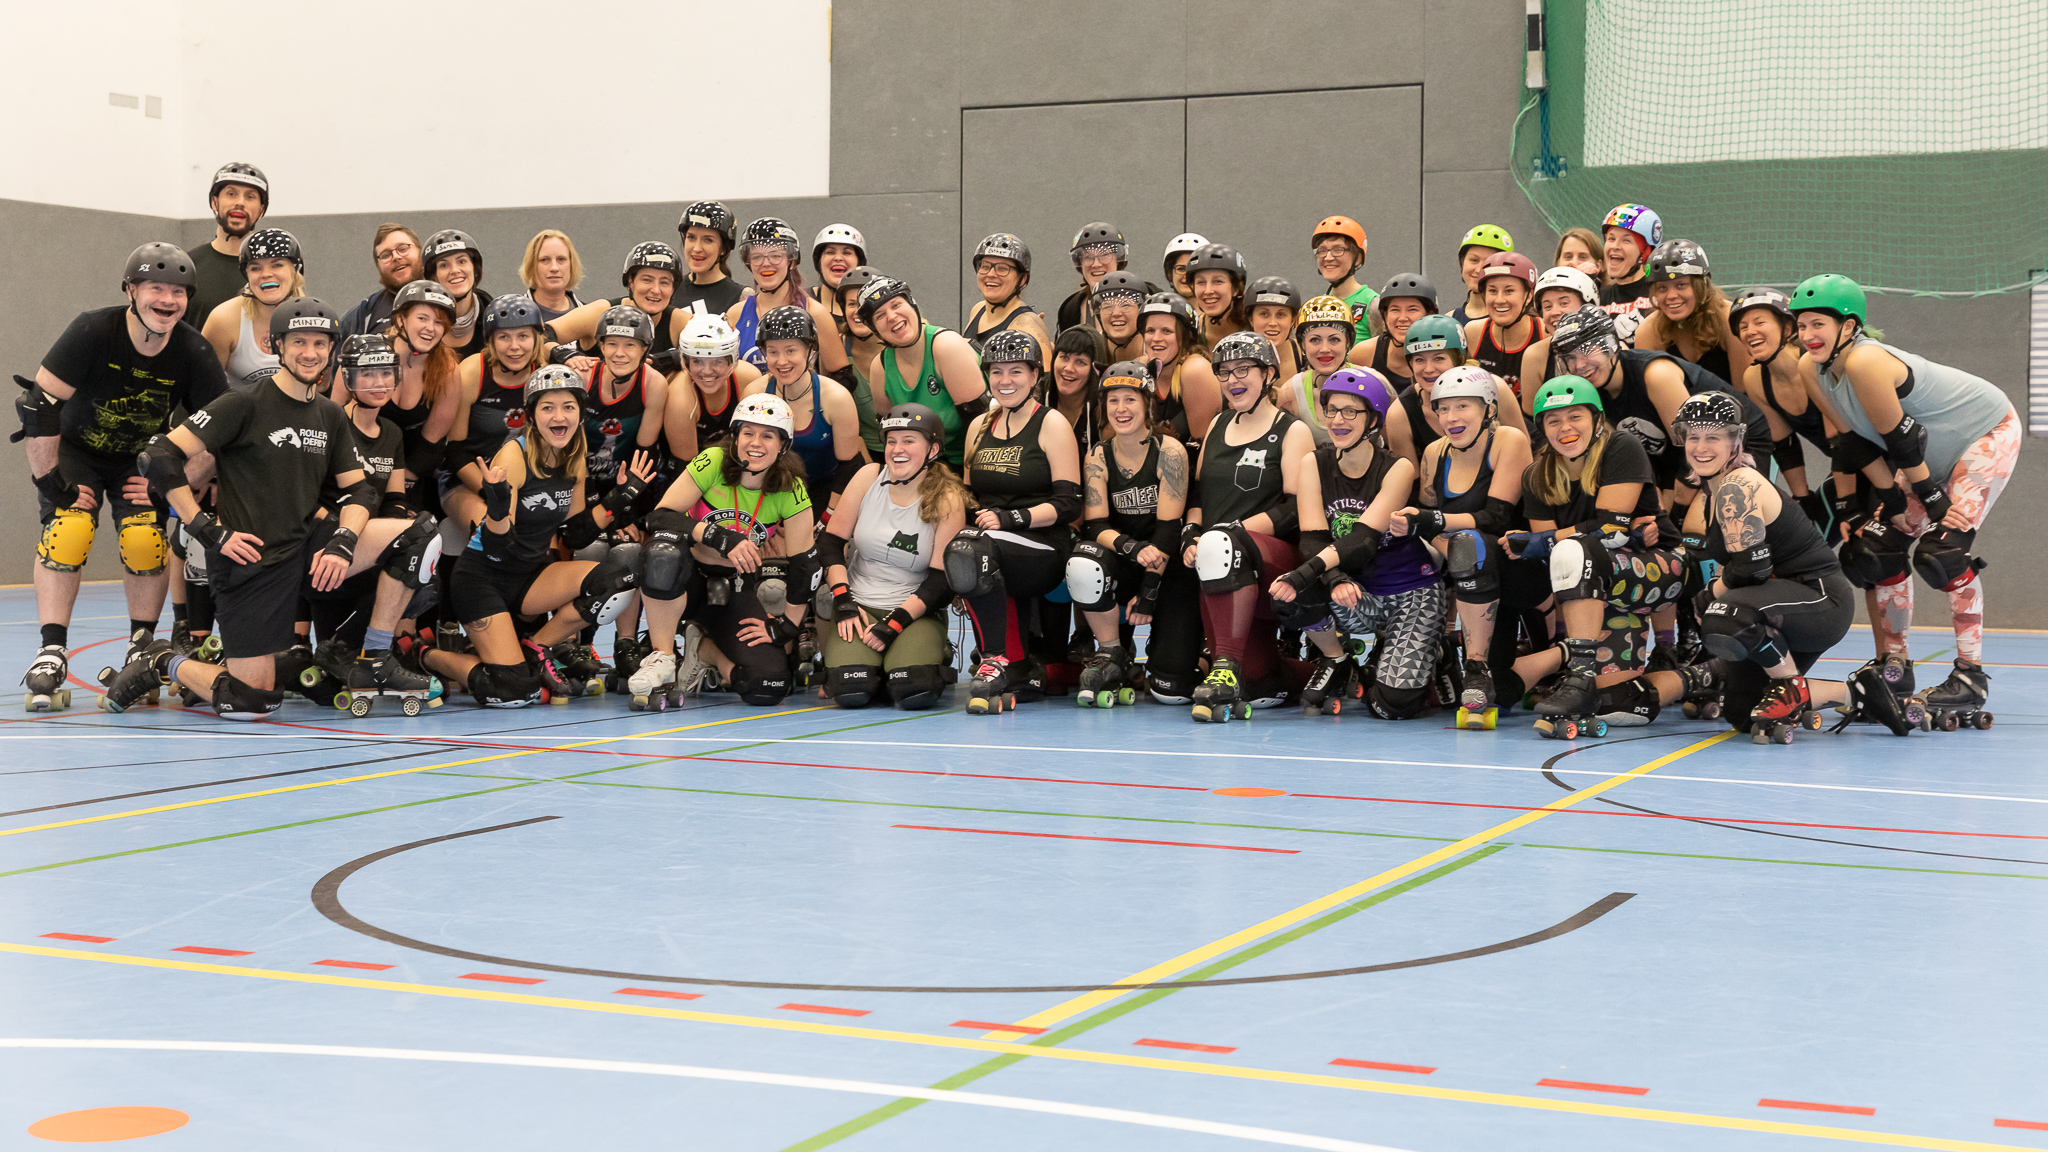 Gruppenfoto Bootcamp Miracle Whips 2020 in Münster